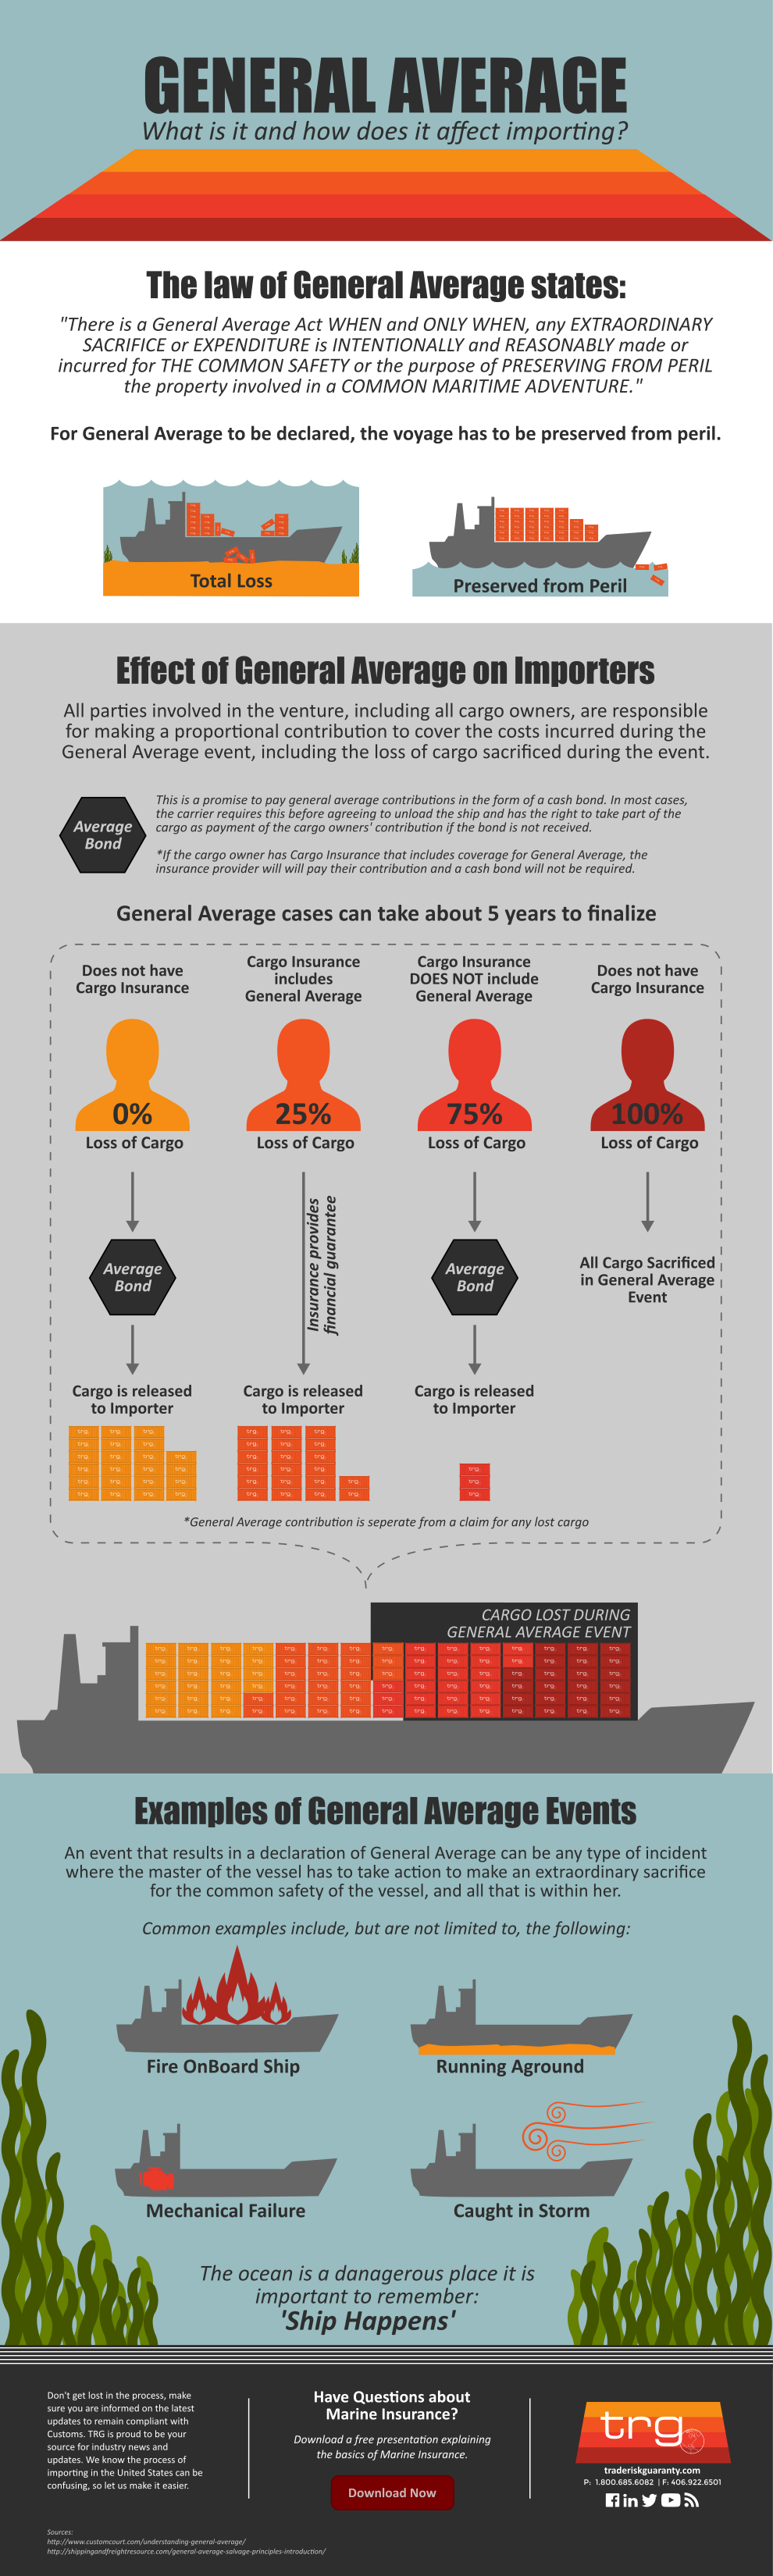 Trade Risk Guaranty provides an infographic explaining General Average for importers.